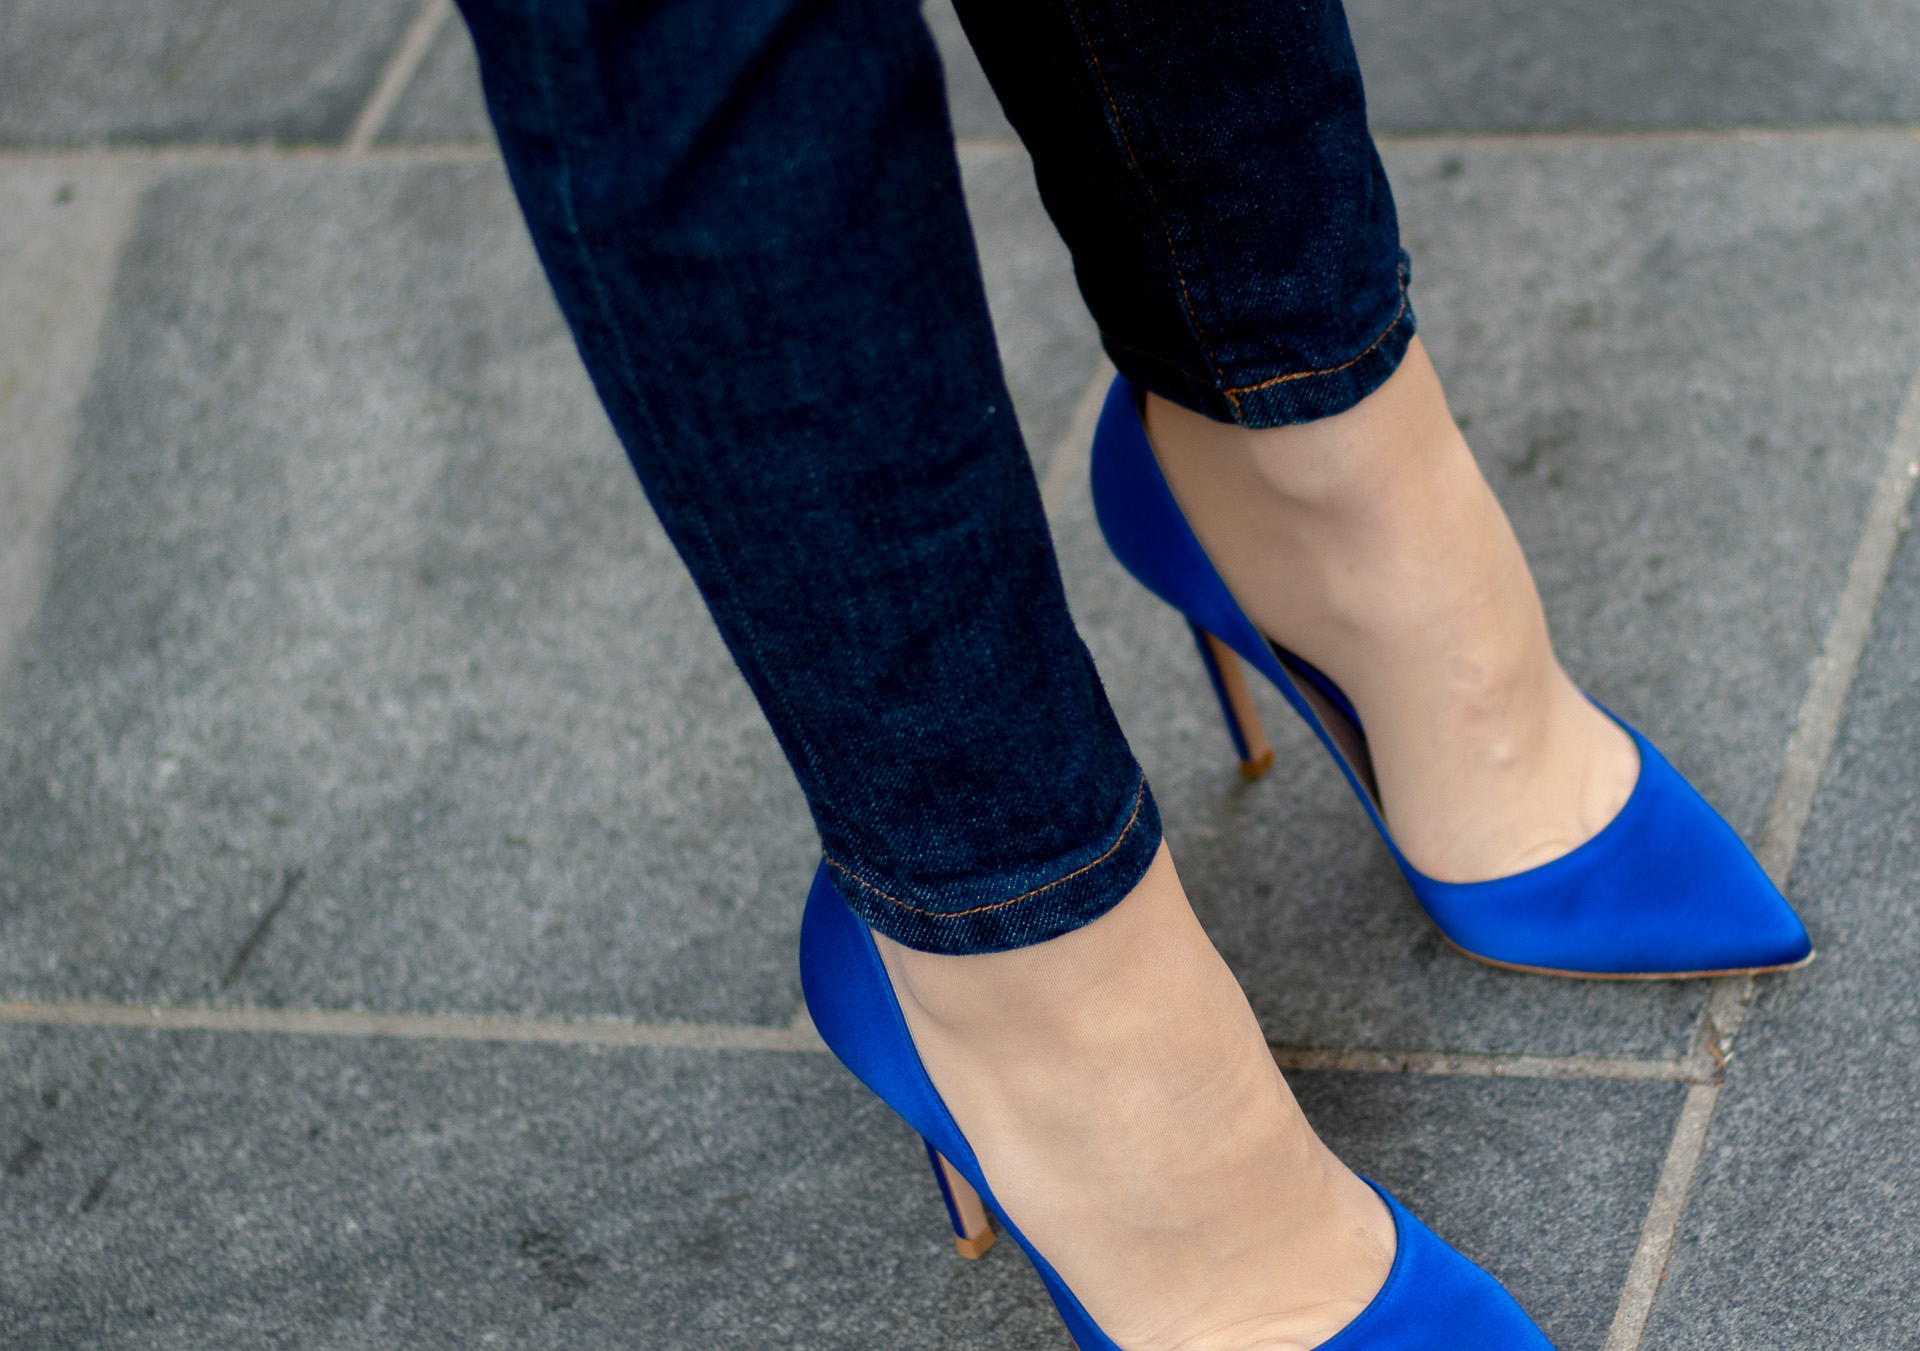 Brunette from Wall Street denim jeans Gianvito Rossi blue pumps